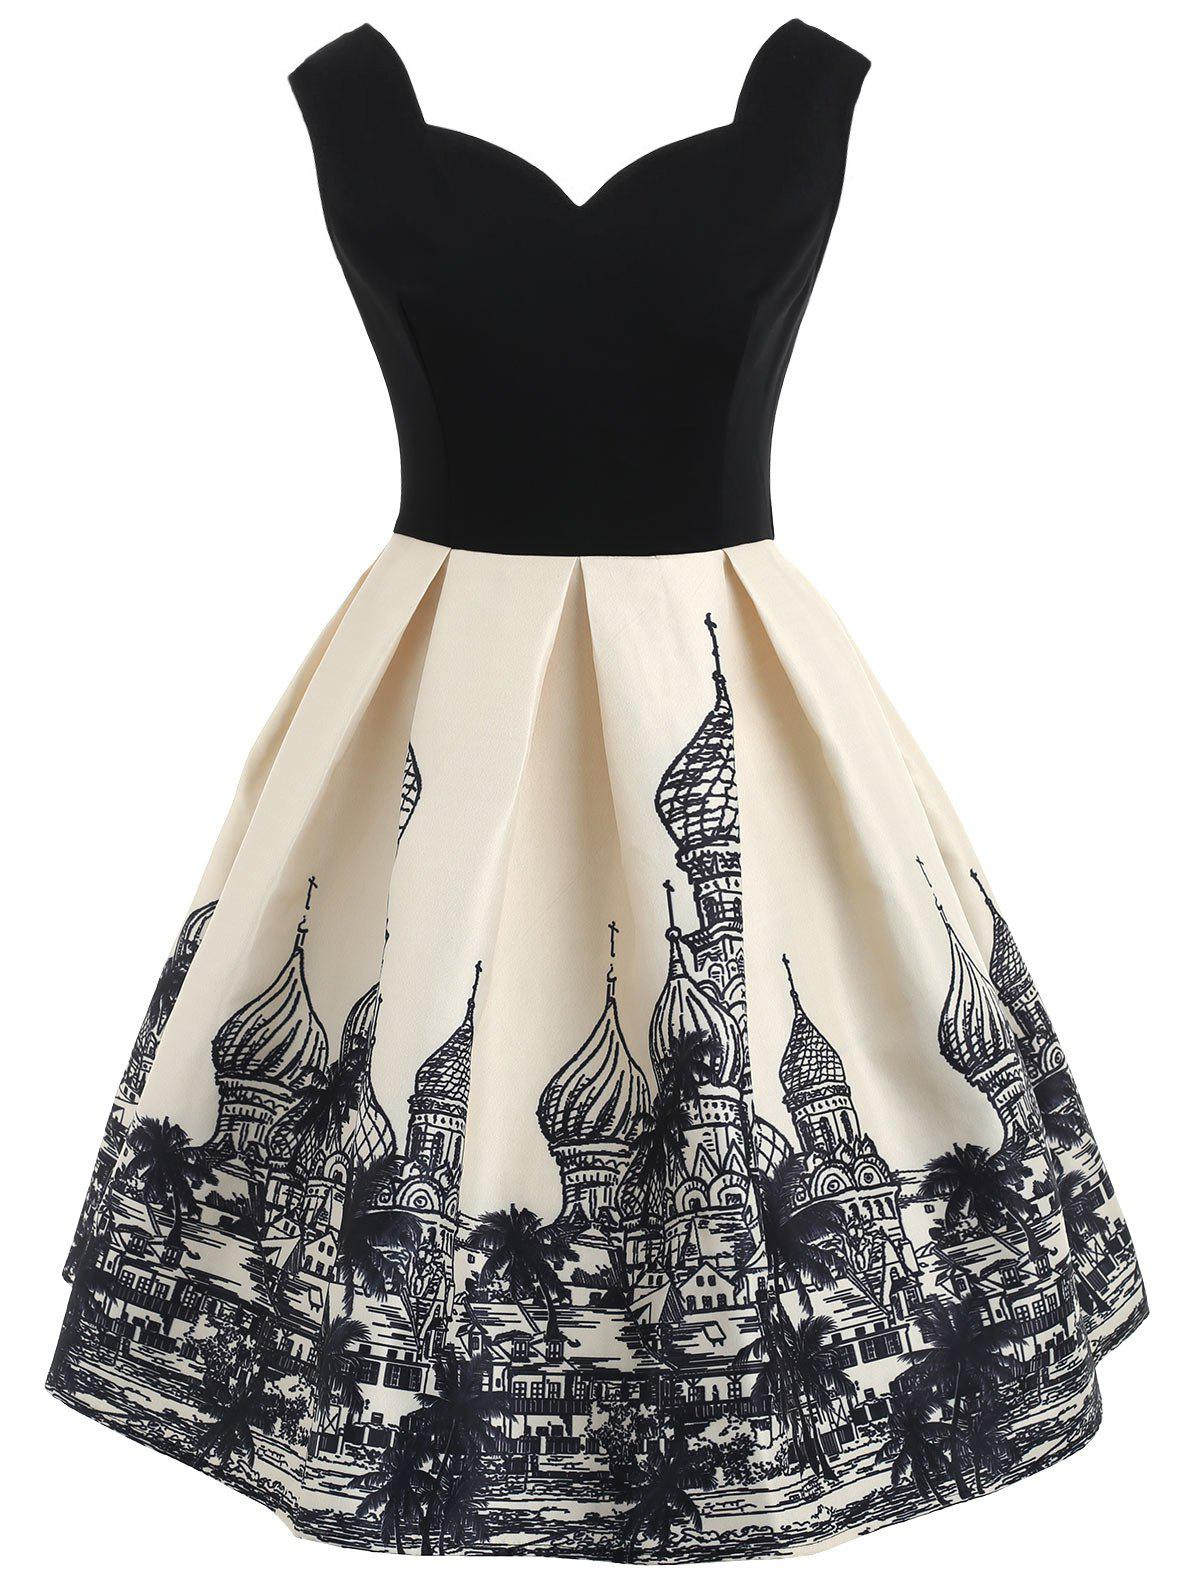 Russian Buildings Printed Sleeveless Flare Dress - BLACK 2XL